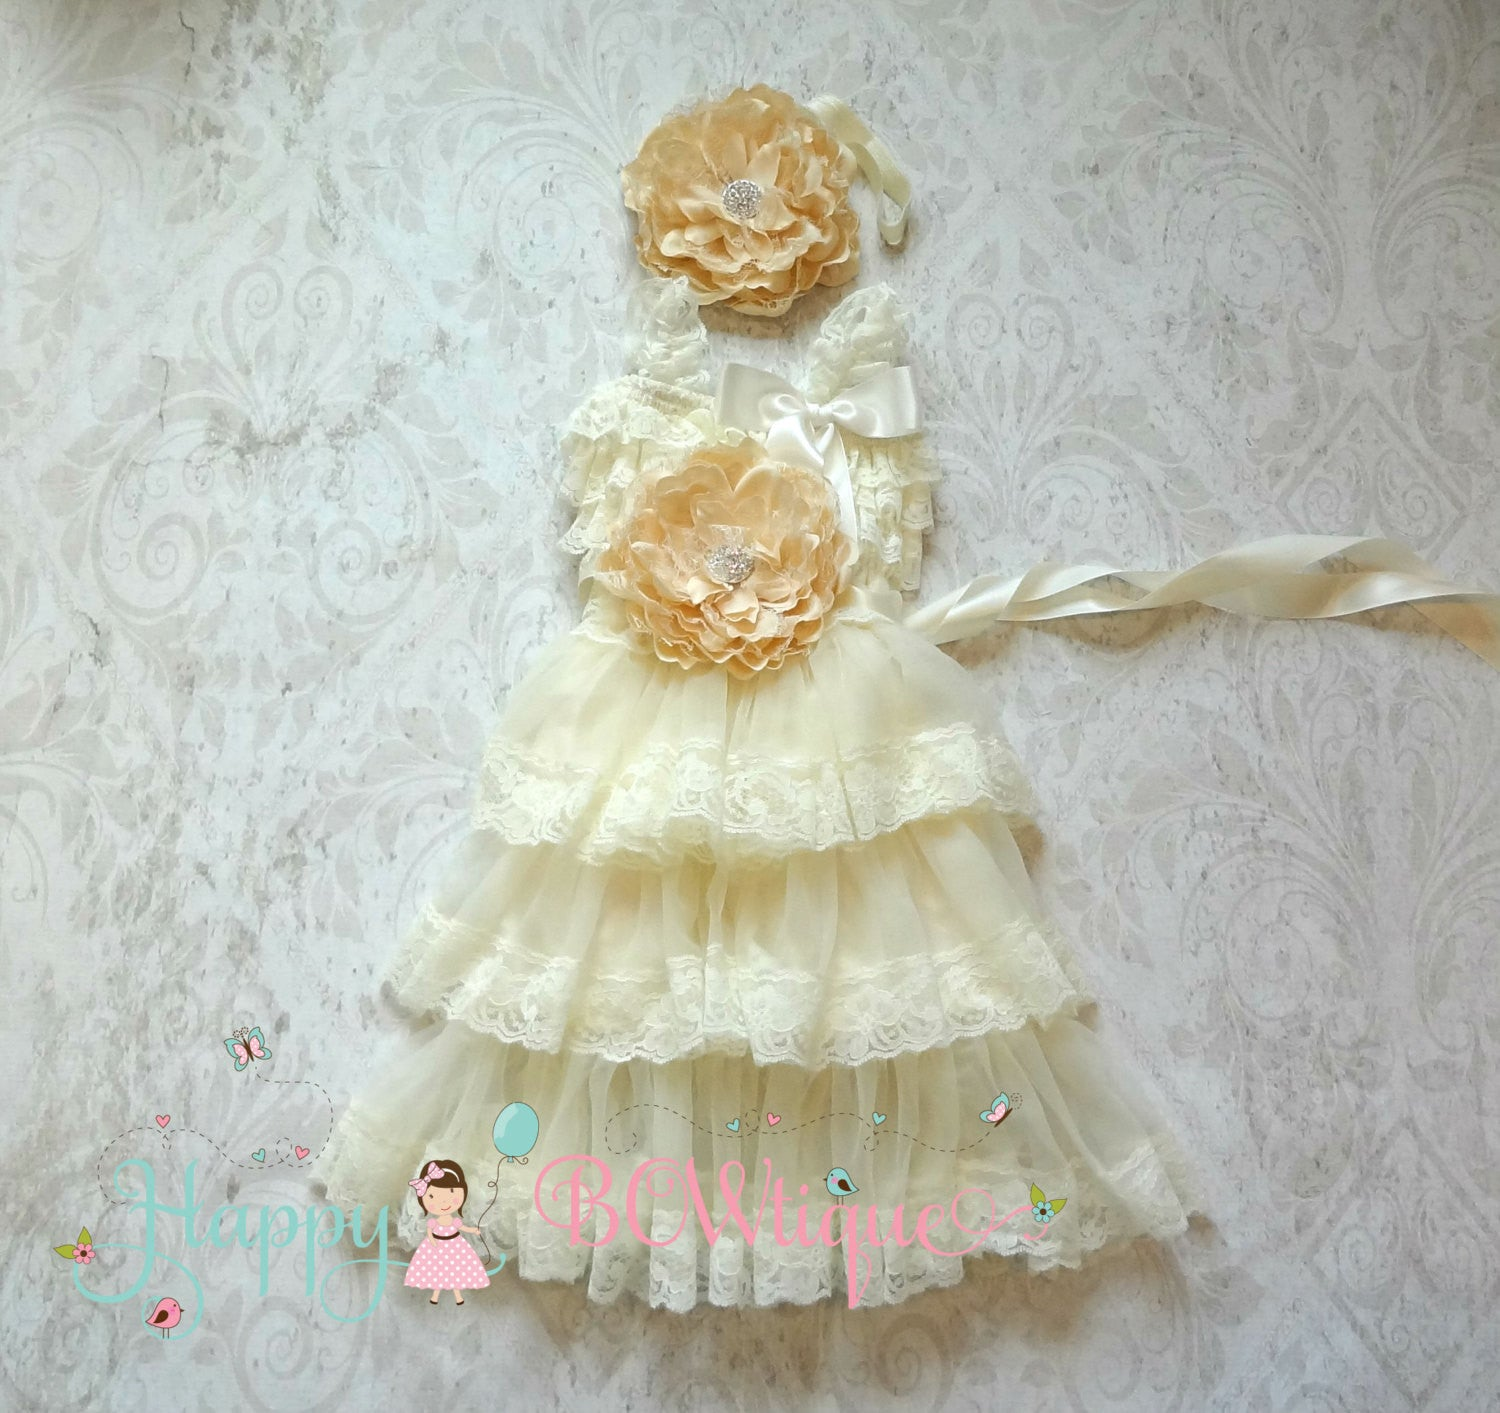 c9261bba7575 Rustic Flower girls dress / Girl Ivory Champagne Flower dress sets \/ Happy  BOWtique \/ Chiffon dress set